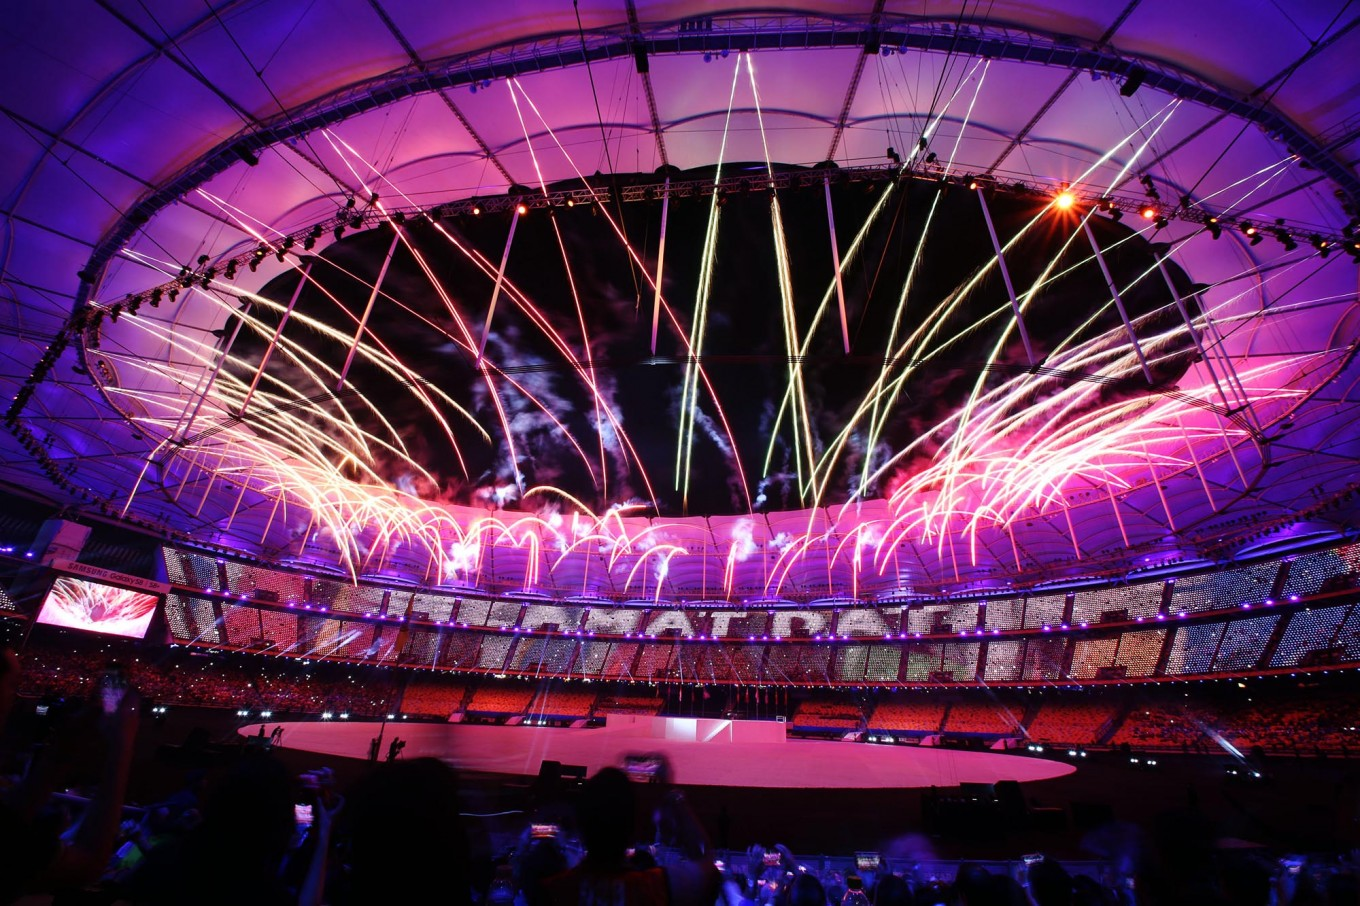 Fireworks amaze spectators during the opening ceremony of the SEA Games in Kuala Lumpur, on Saturday, Aug. 19, 2017. The event will be held until Aug. 30, 2017. JP/Seto Wardhana